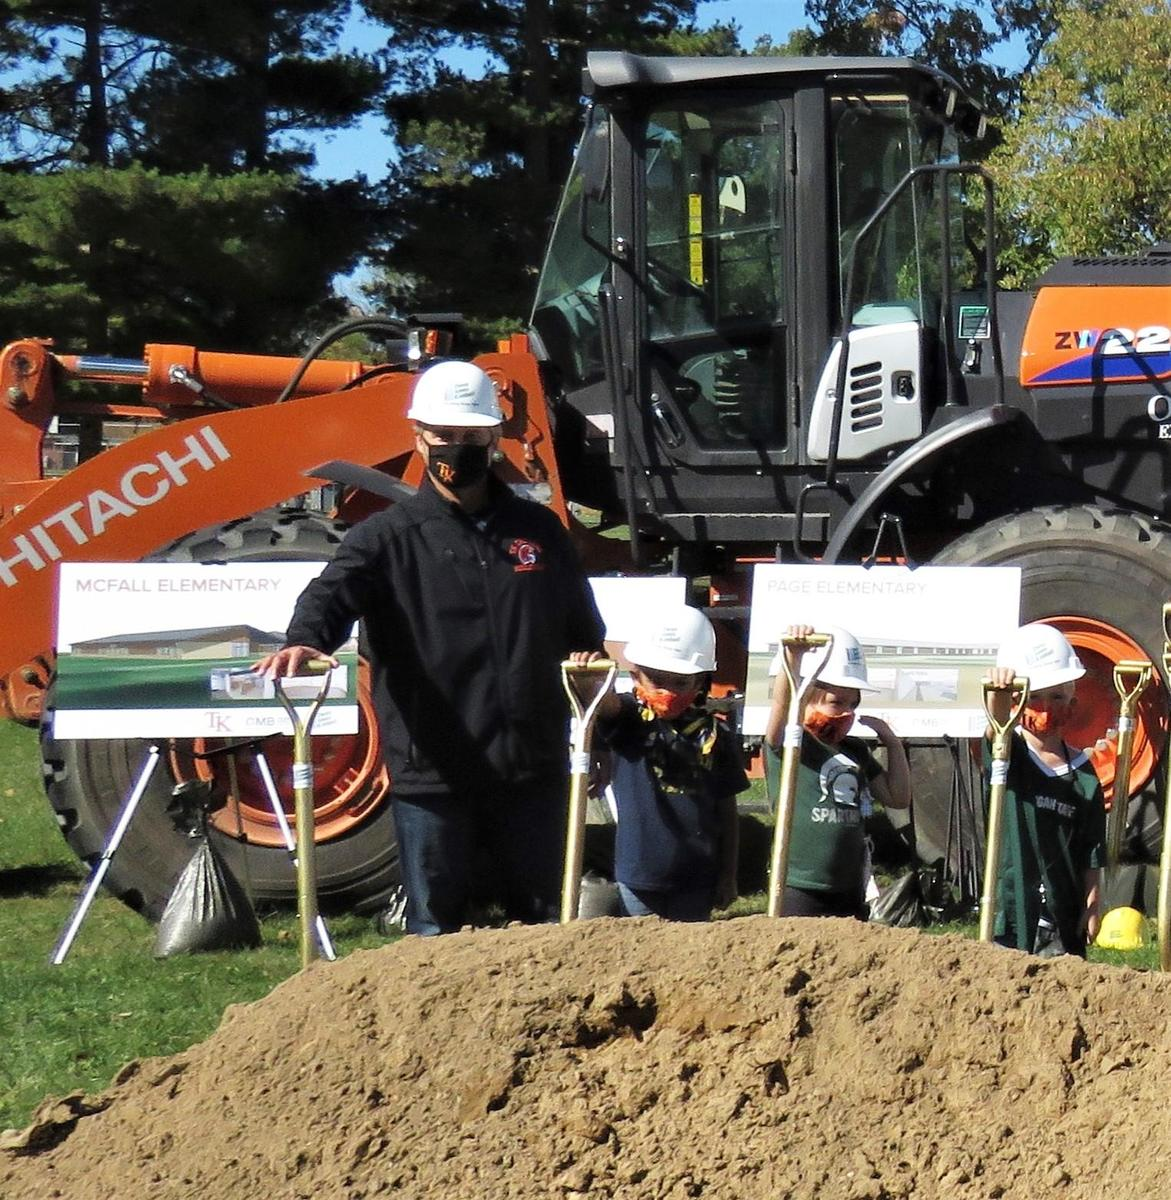 McFall Principal Jon Washburn and three McFall students take part in the groundbreaking ceremony.